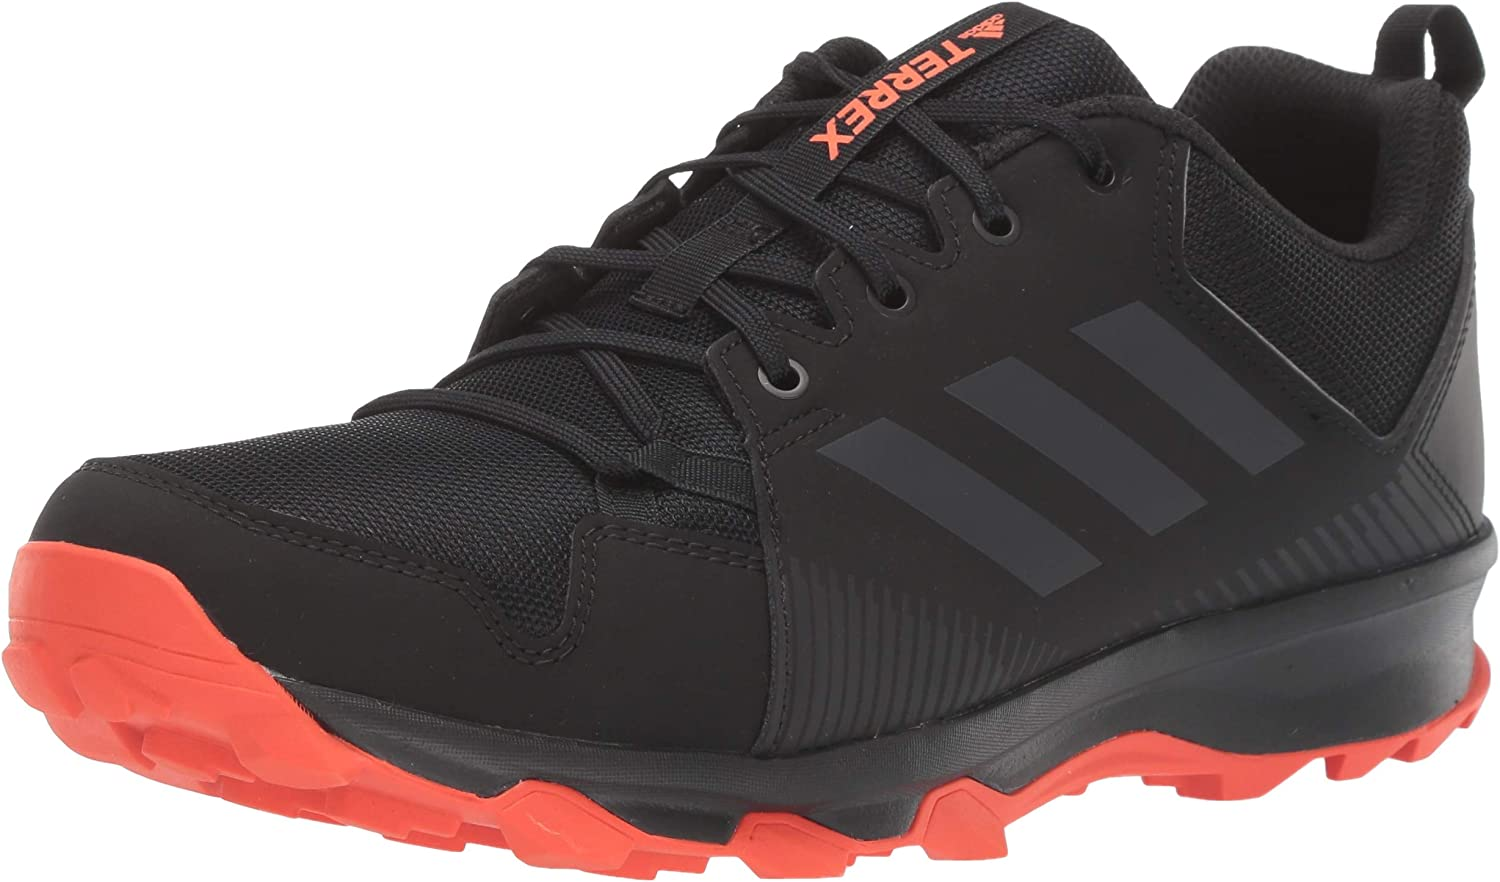 adidas Outdoor Men s Terrex Tracerocker Trail Running Shoe, Black Carbon Active Orange, 11.5 D US